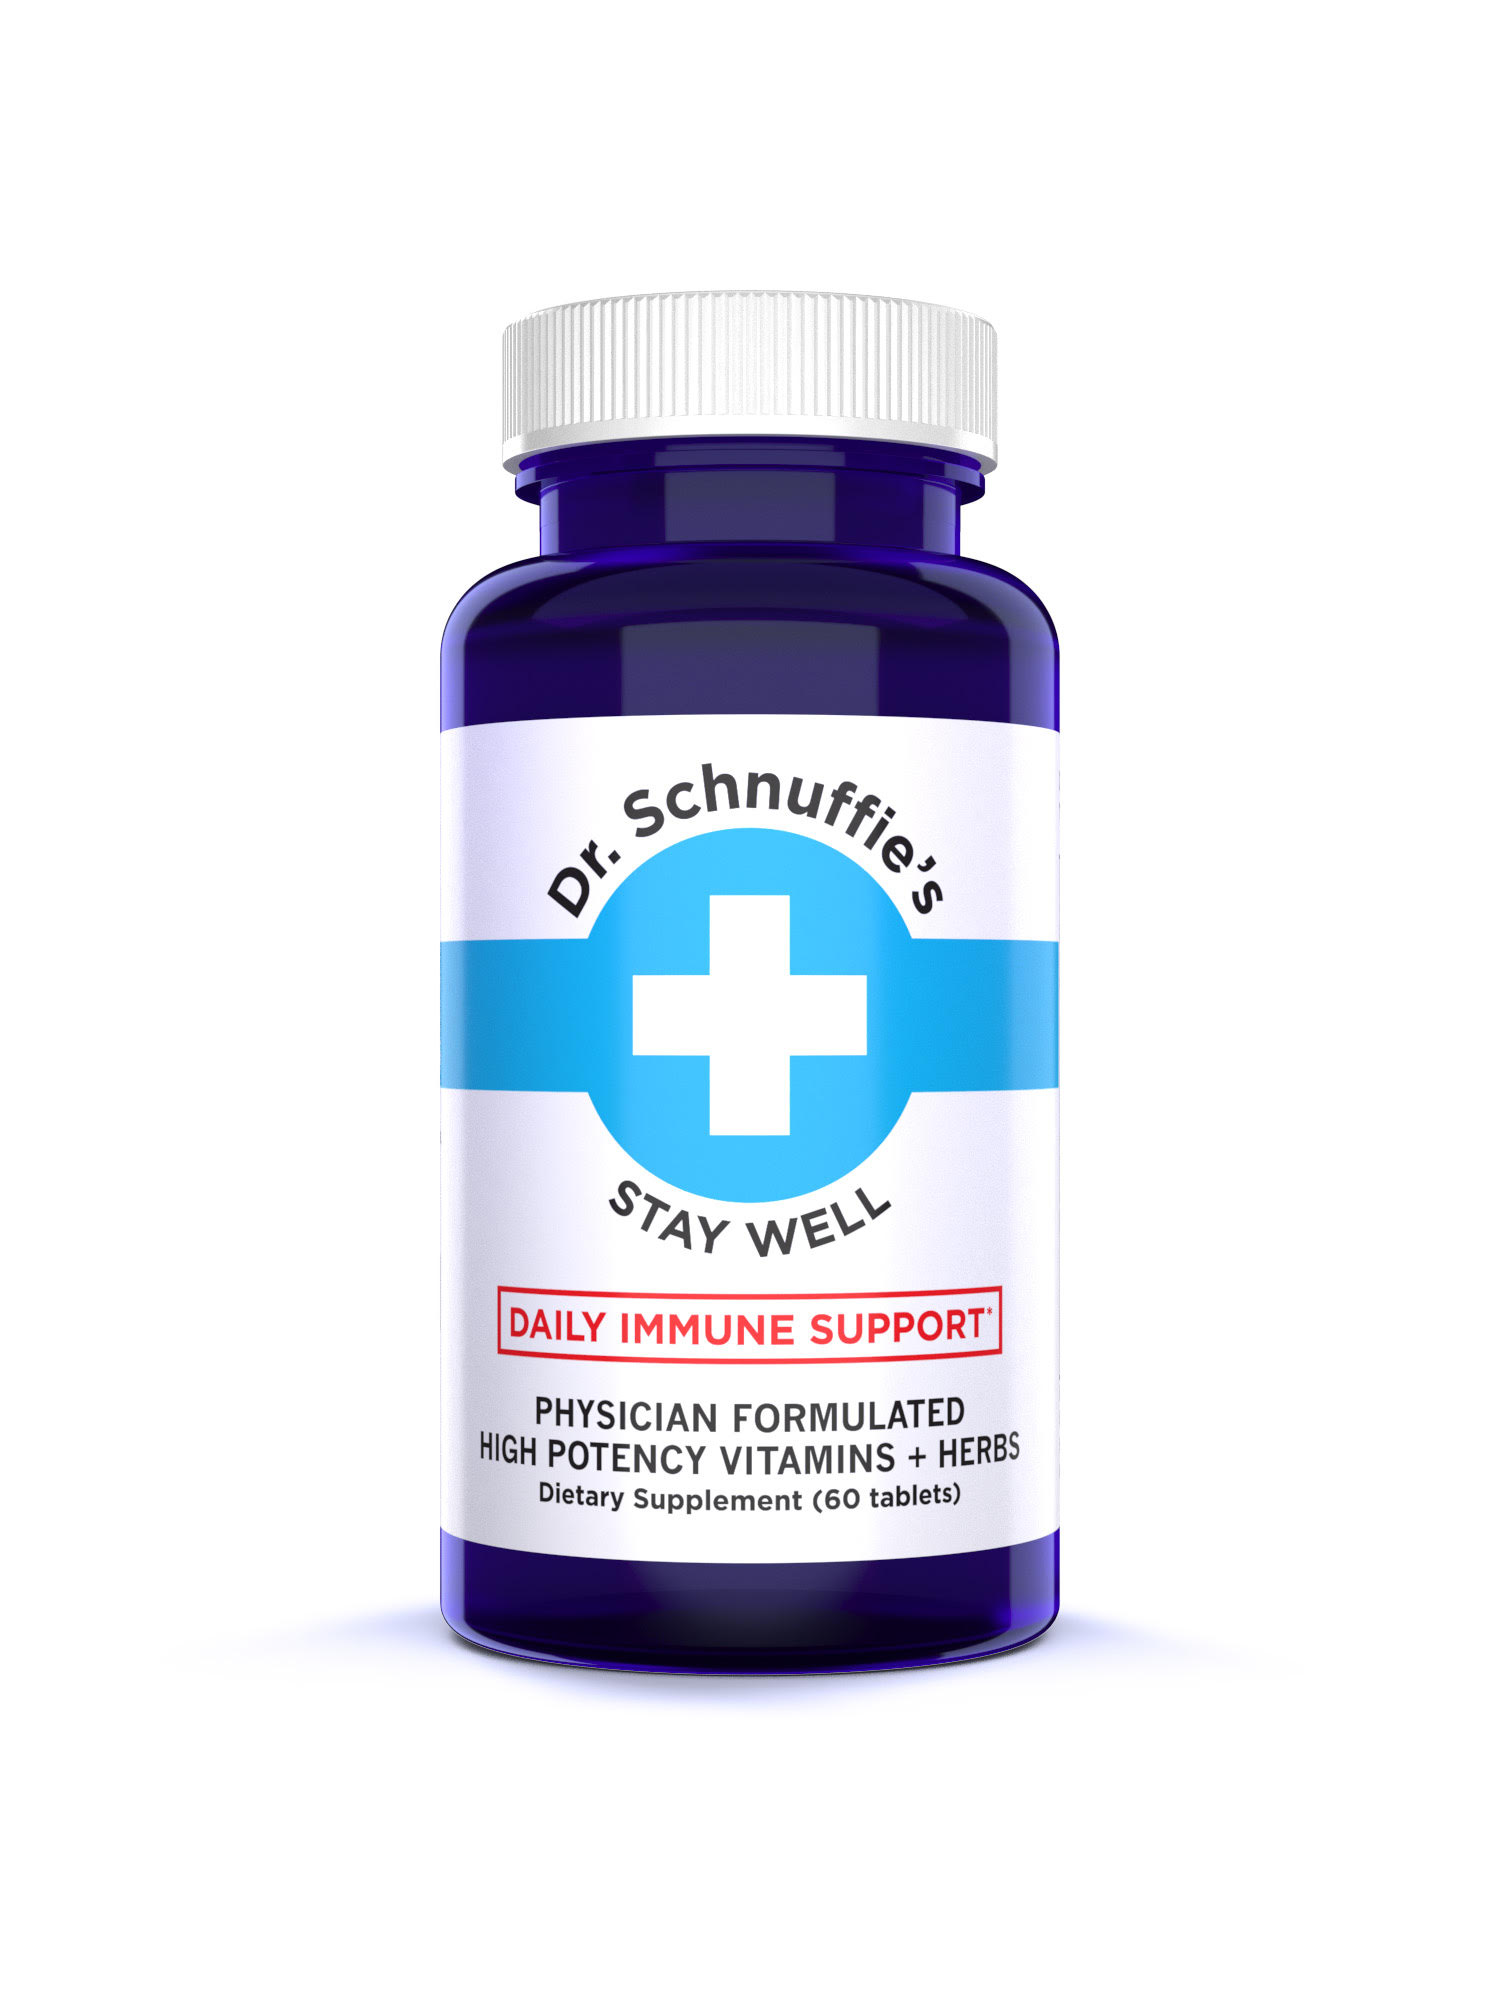 dr+schnuffies+wellness+formulas+stay+well+premium+quality+vitamin+supplement+natural+cold+flu+remedy+works+fast+american+made.png